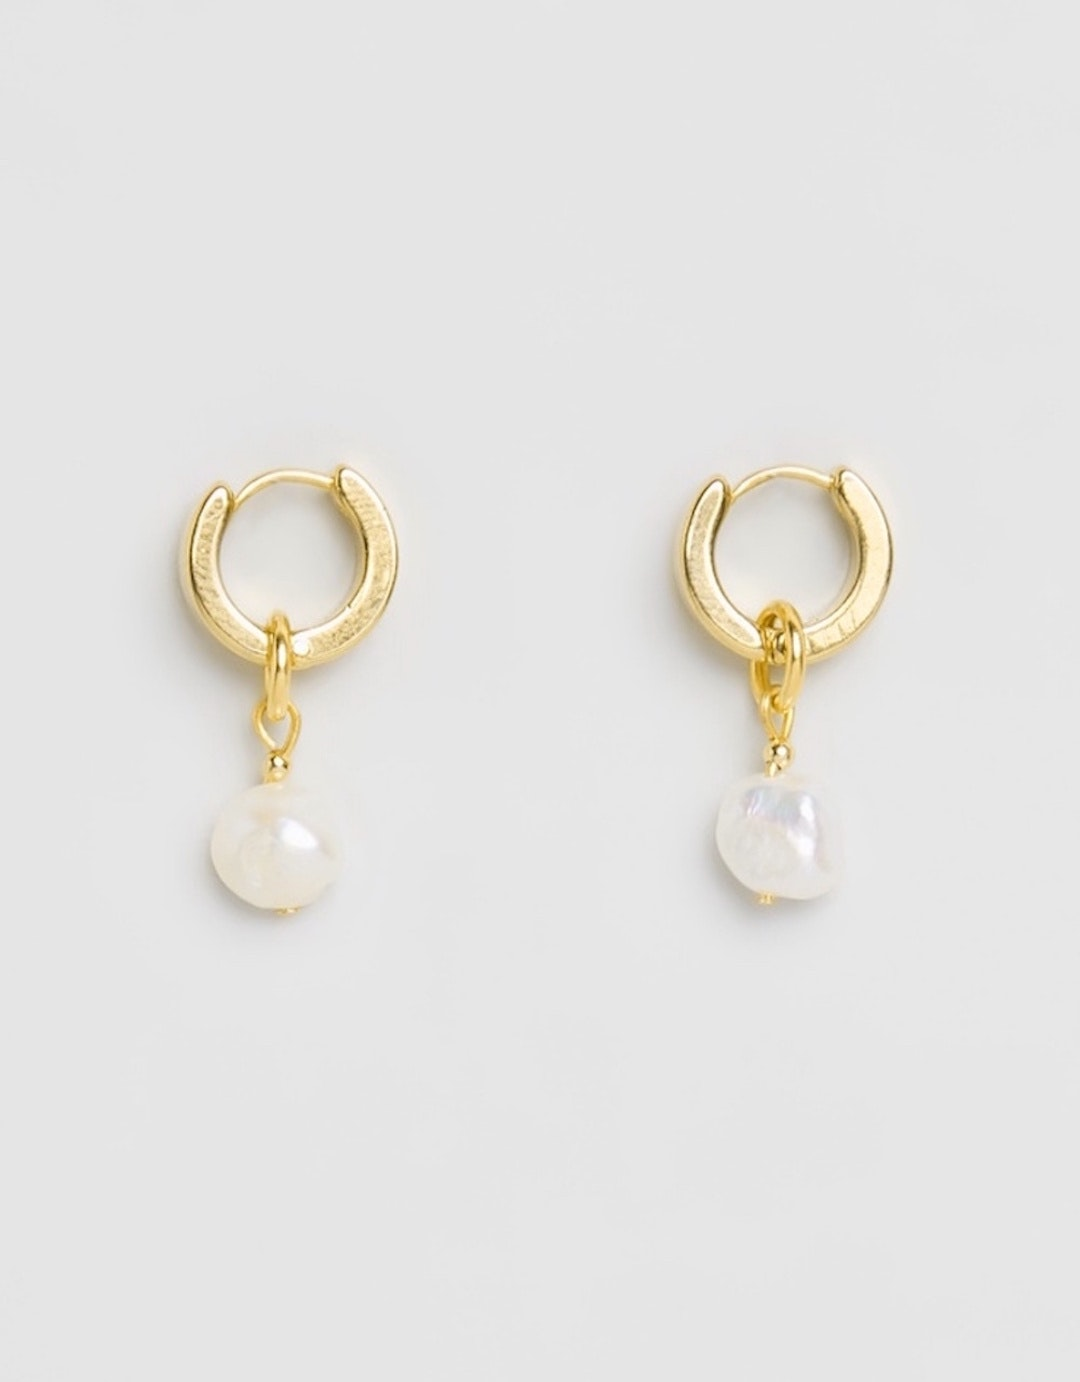 Two gold Brie Leon sleeper earrings with a pearl drop are laid down side by side.